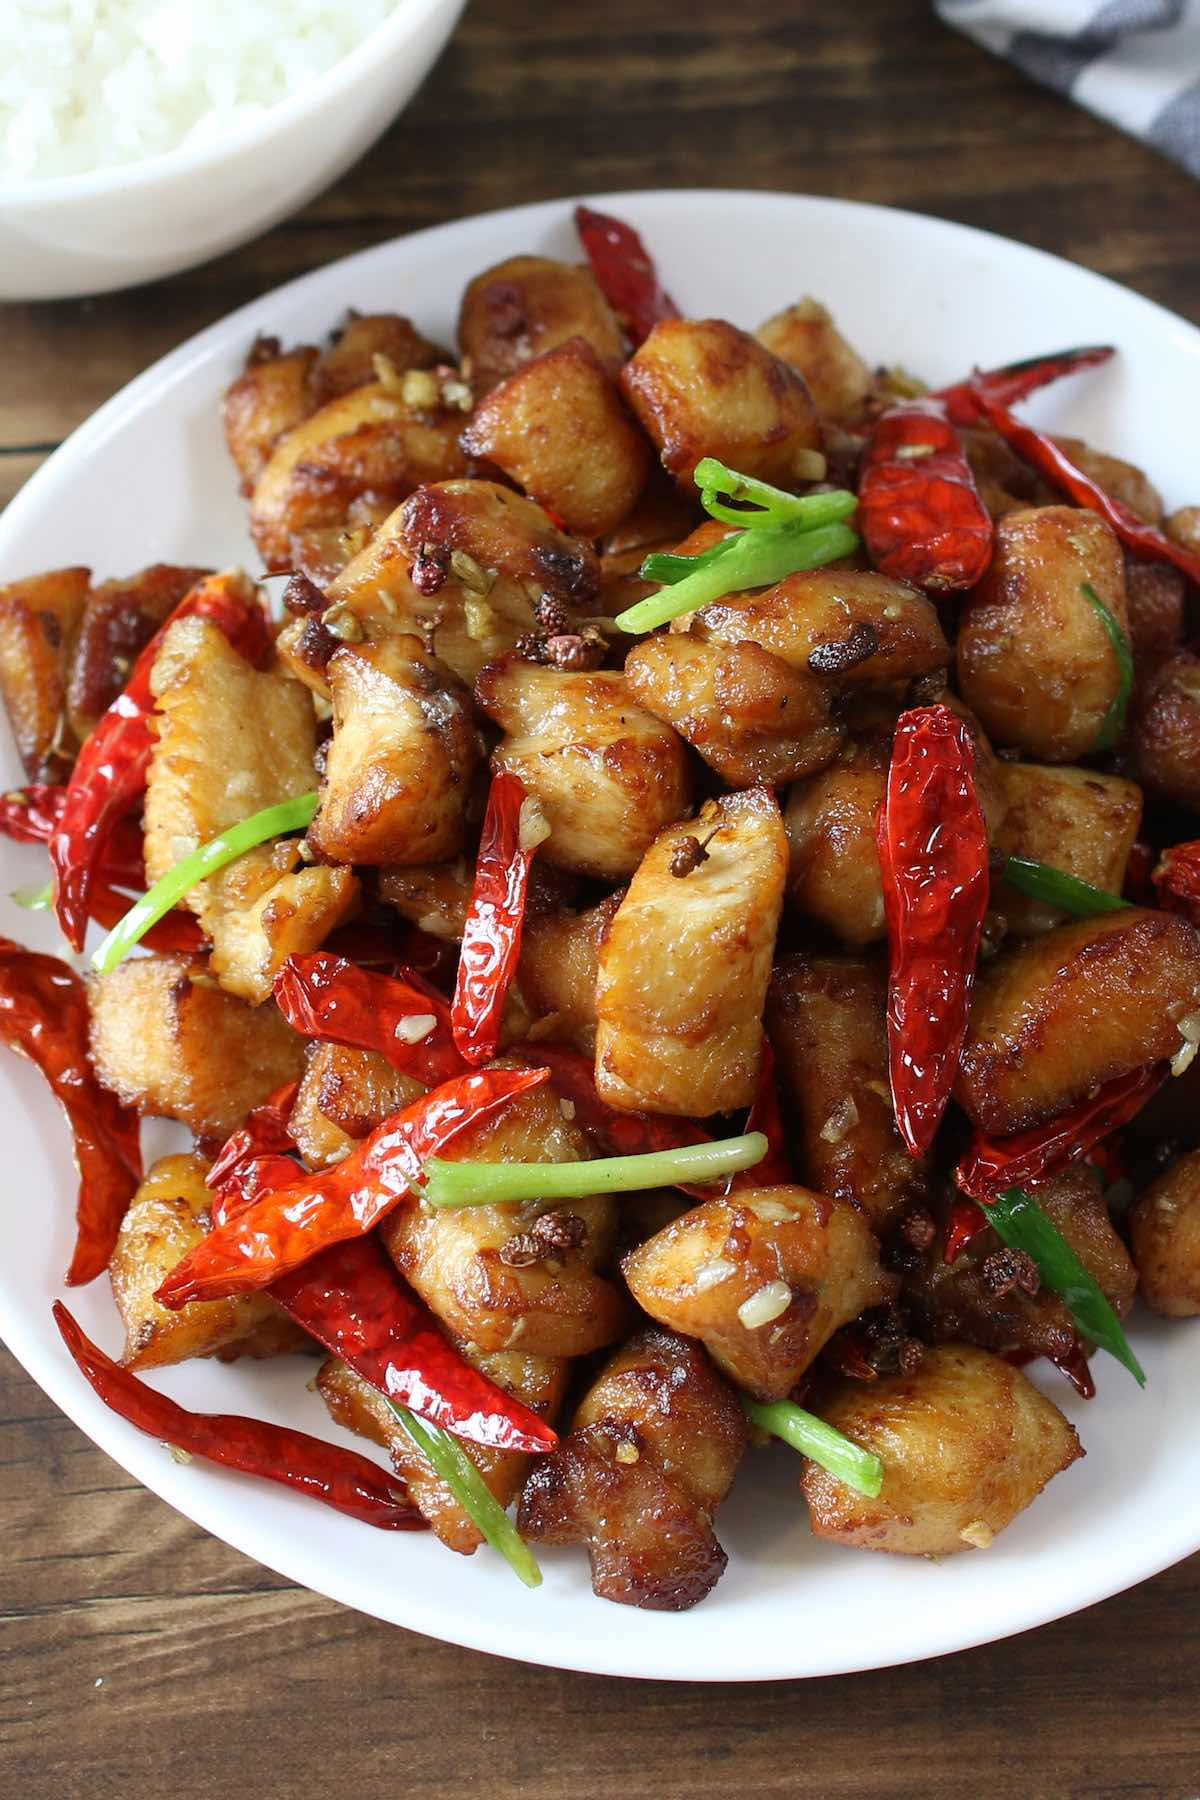 Szechuan chicken cooked with whole Szechuan peppercorns on a serving plate.